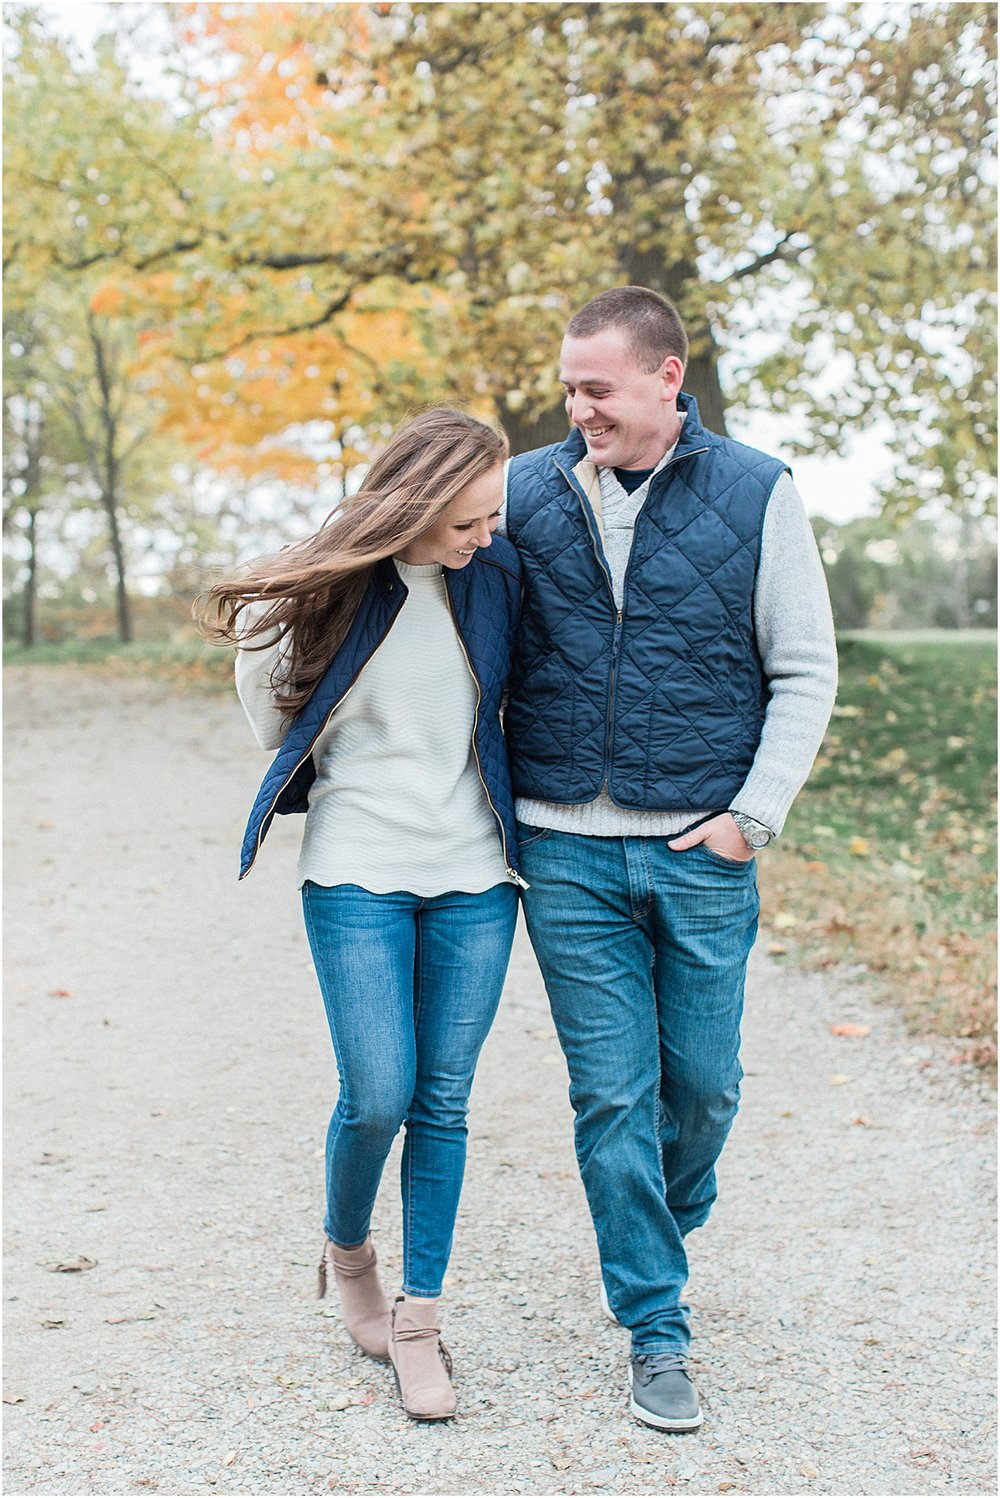 sarah_wille_engagement_worlds_end_hingham_fall_cape_cod_boston_wedding_photographer_meredith_jane_photography_photo_1732.jpg